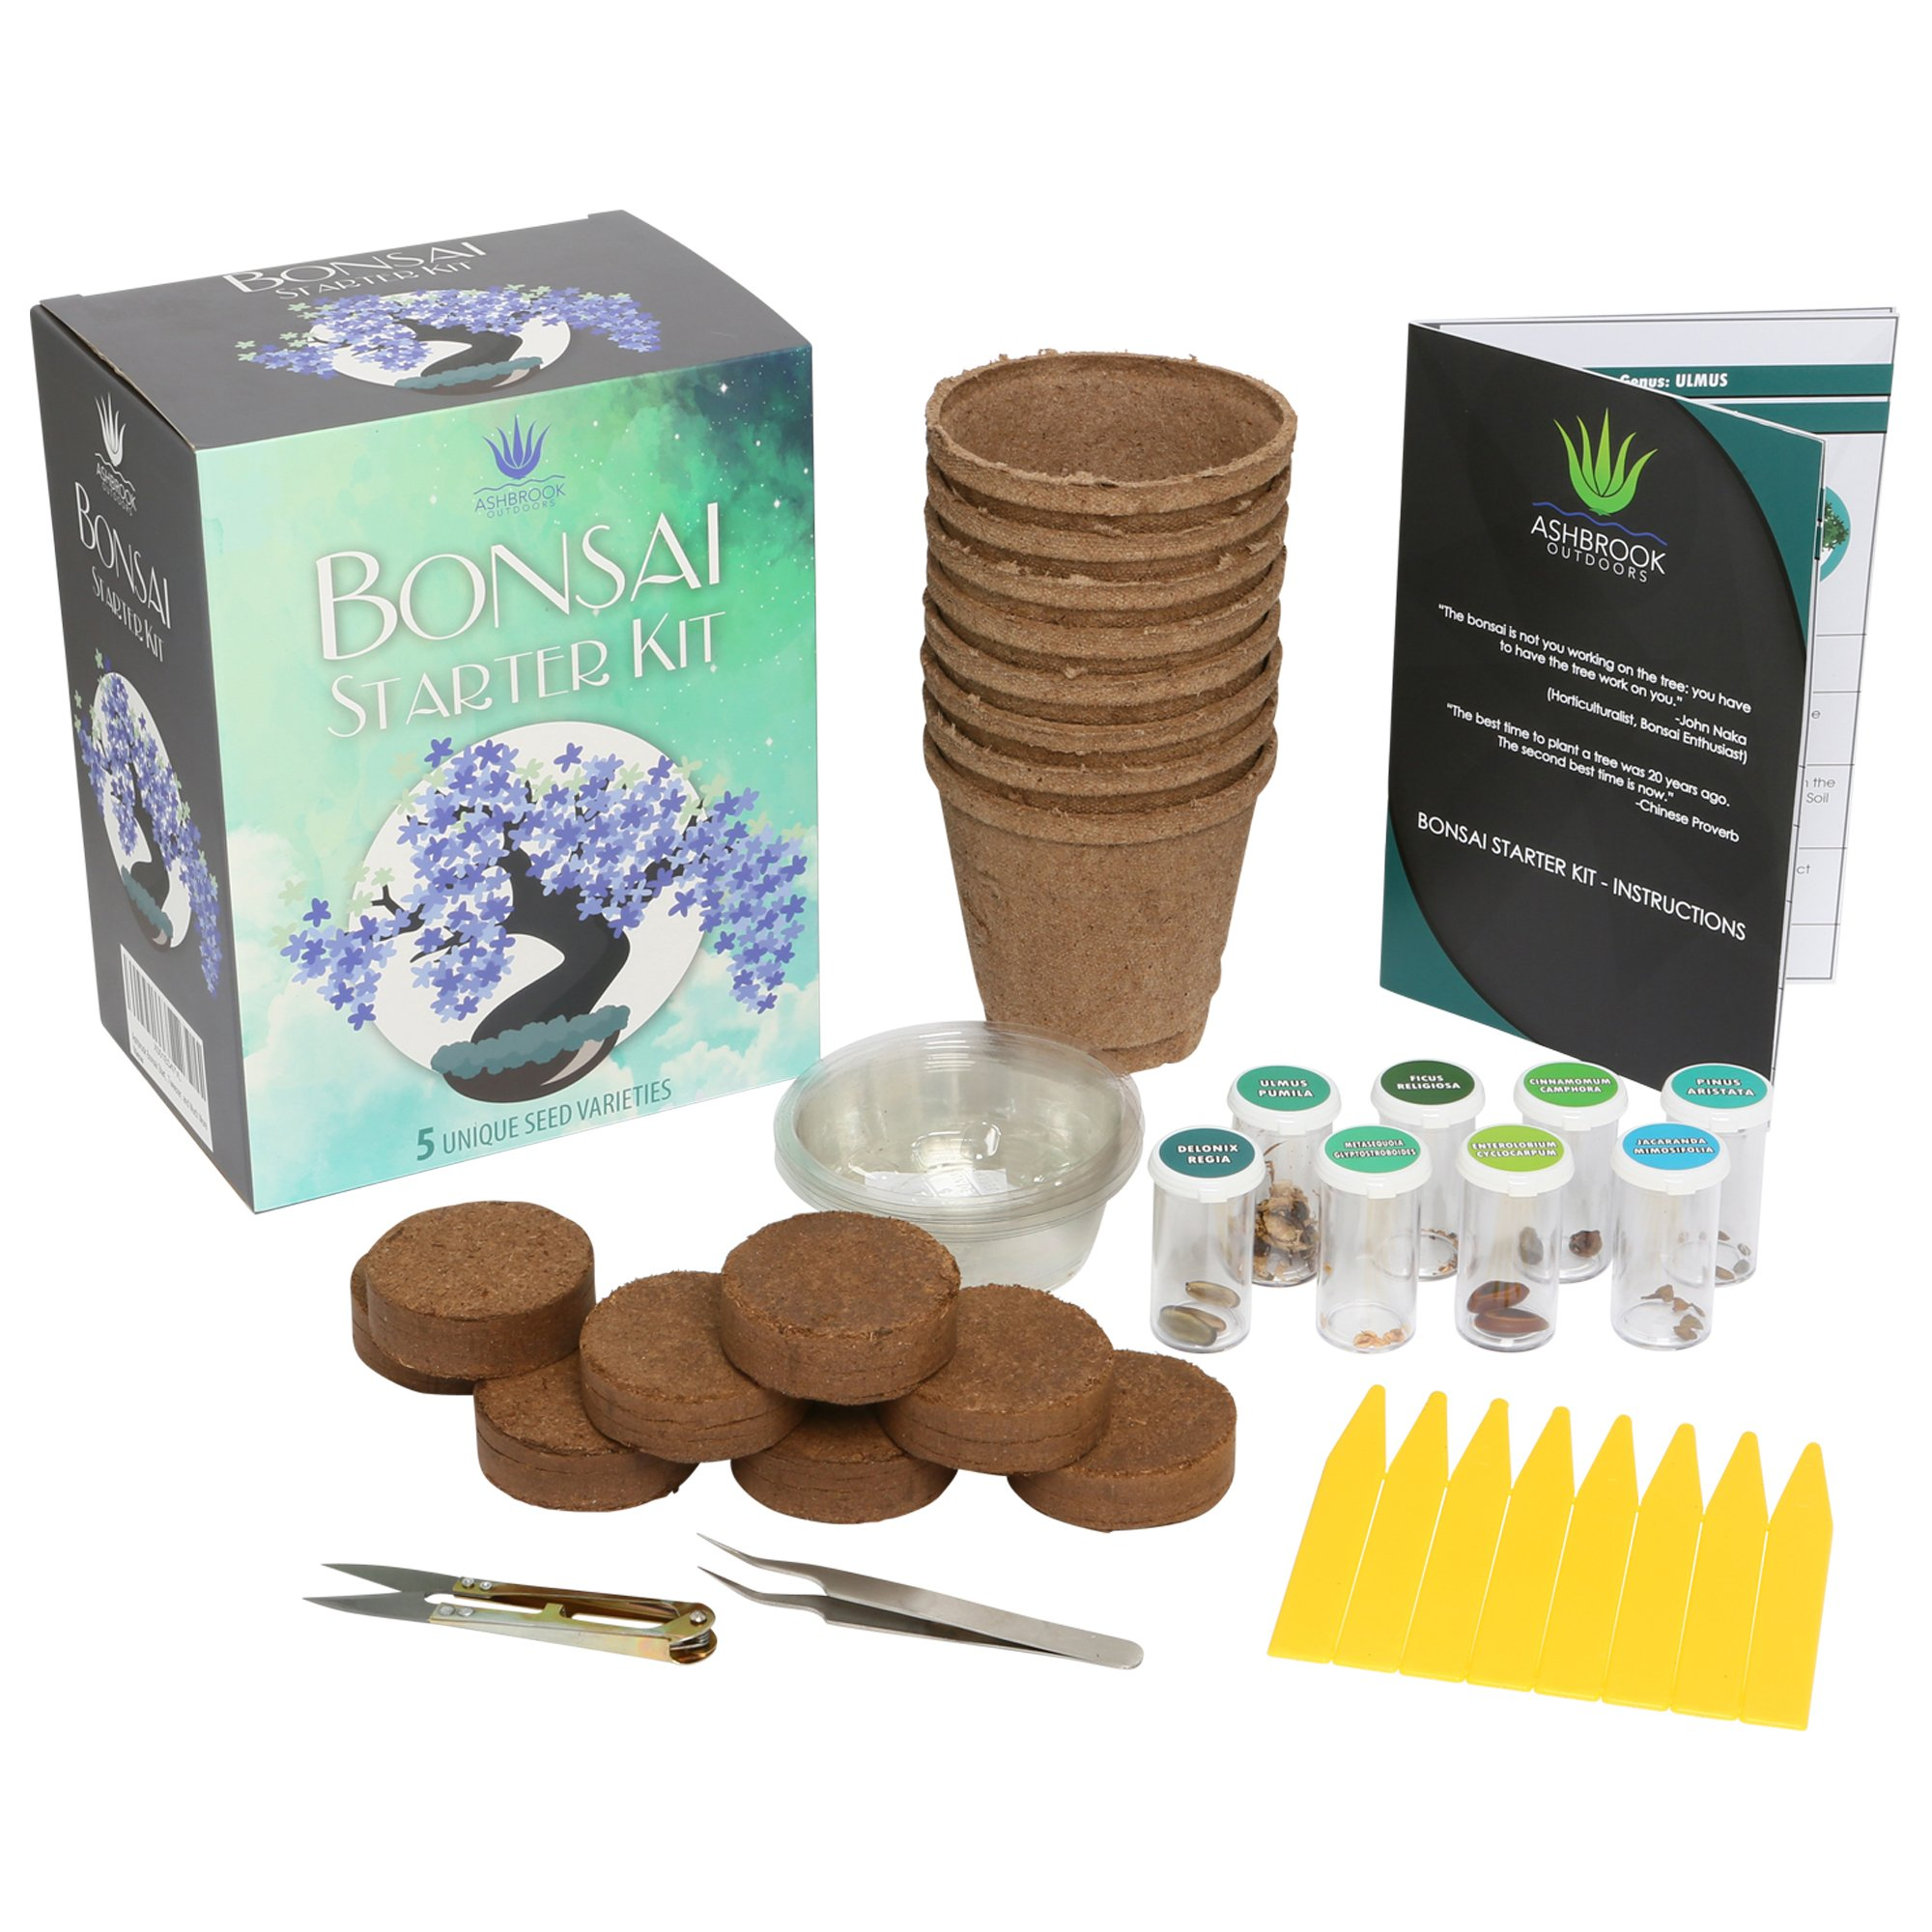 Bonsai Starter Kit Everything You Need to Grow 8 Colorful Bonzai Trees Complete Gardening... by